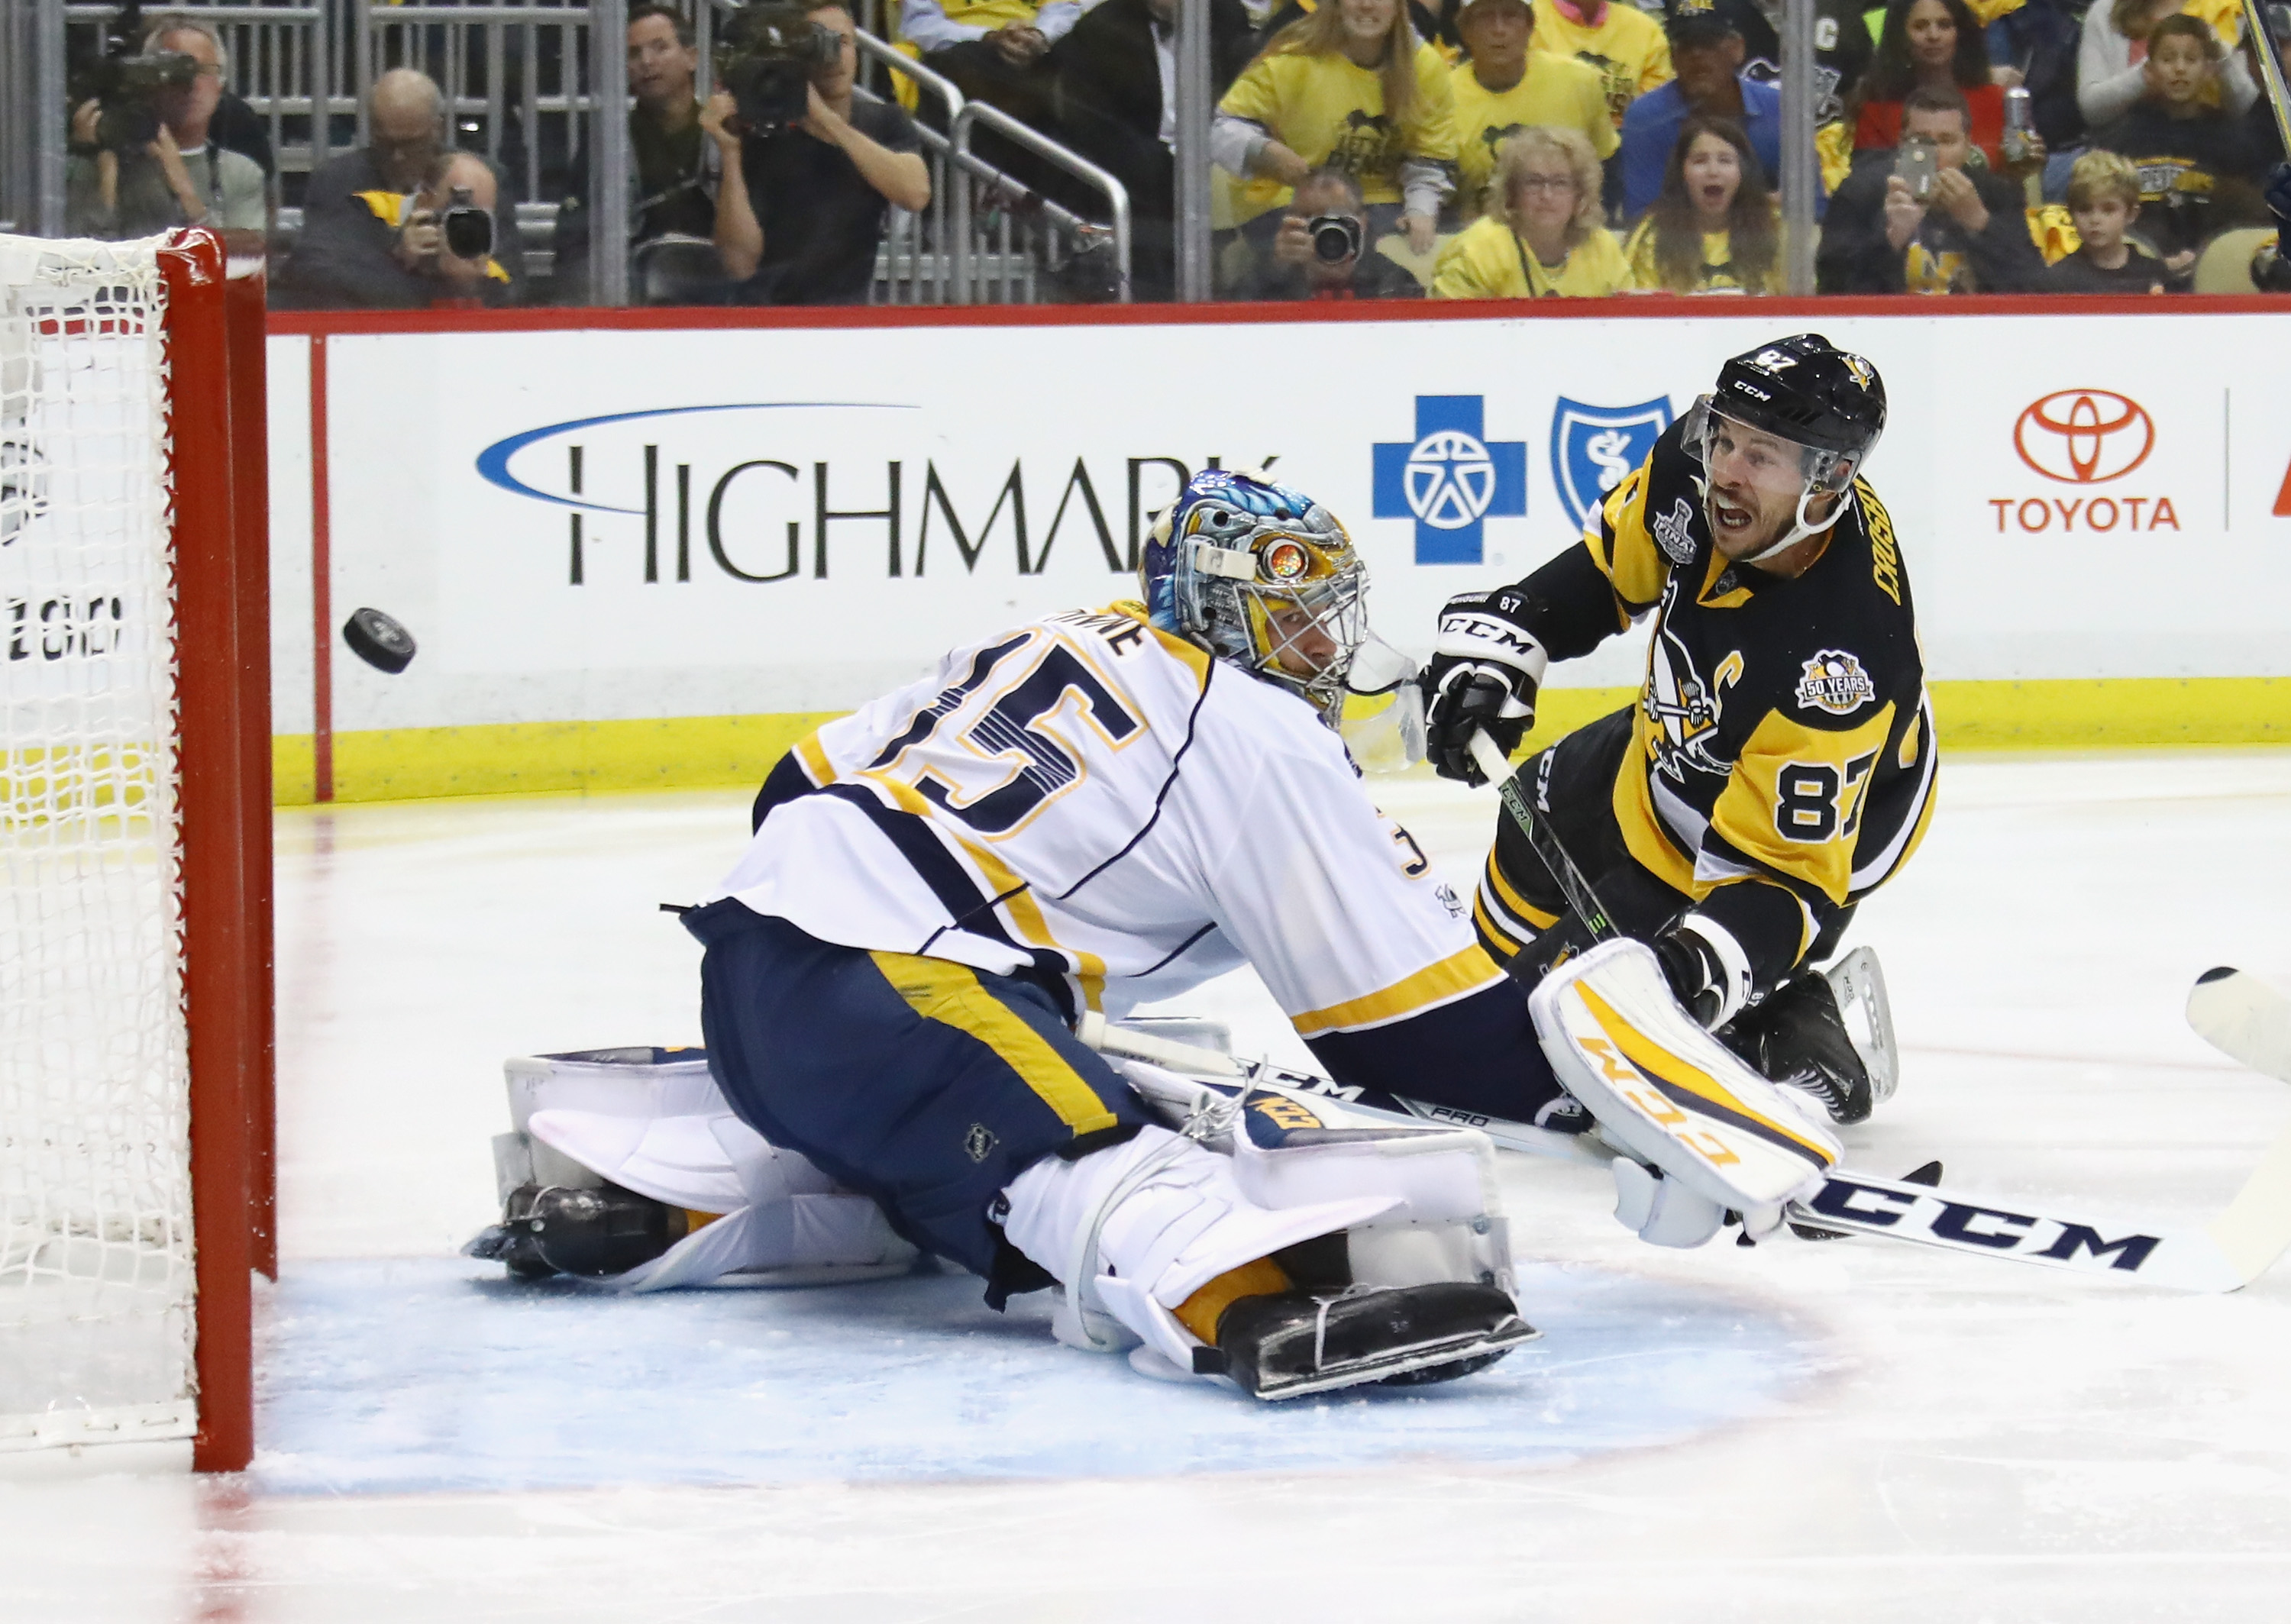 Stanley Cup Final: 3 things the potential repeat champion Penguins are not